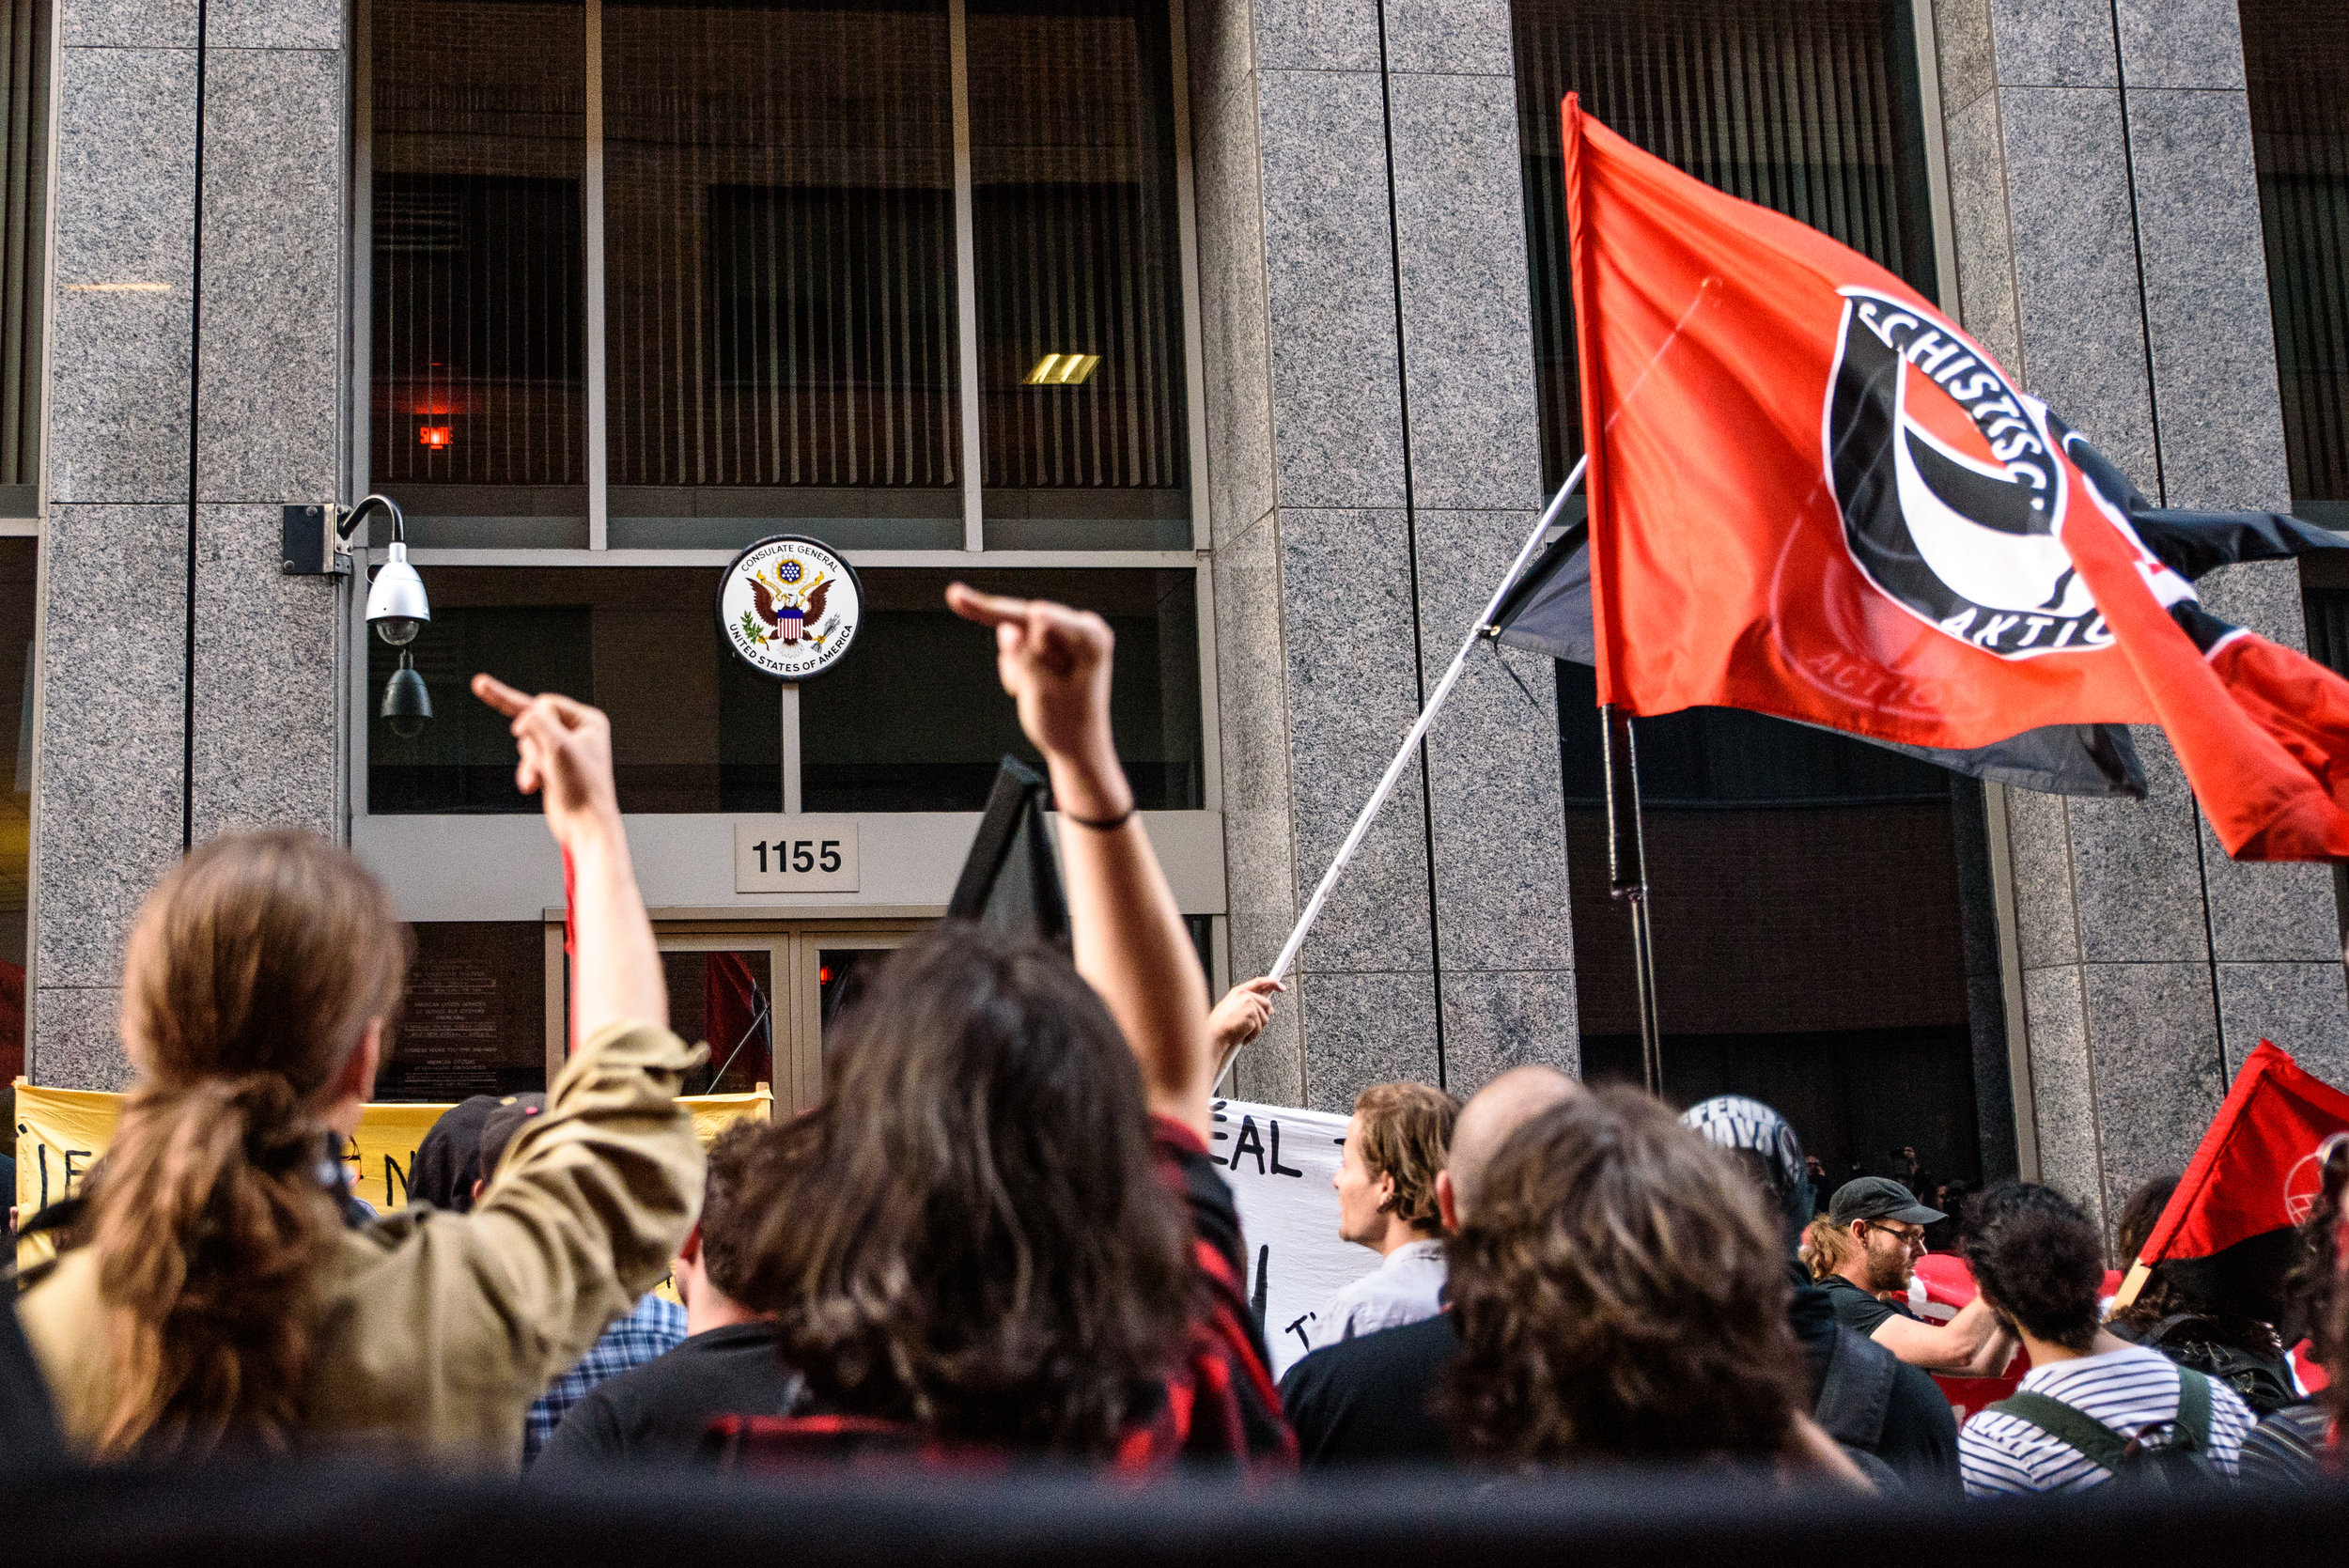 Antifascists protesters gather in front of the US consulate in downtown Montreal.